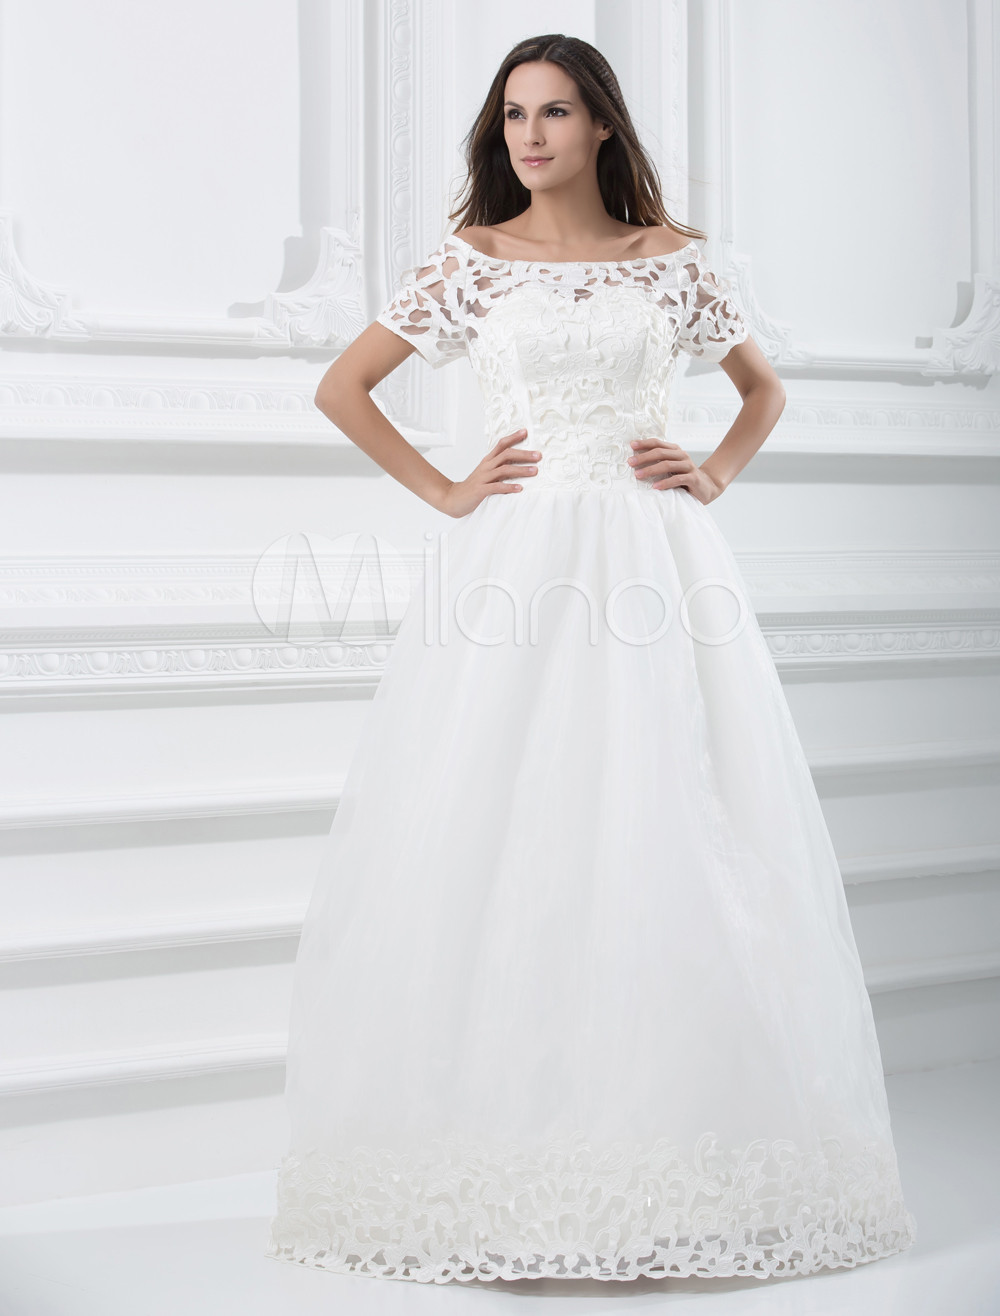 Pretty Ivory Round Collar A-line Lace Wedding Dress - Milanoo.com